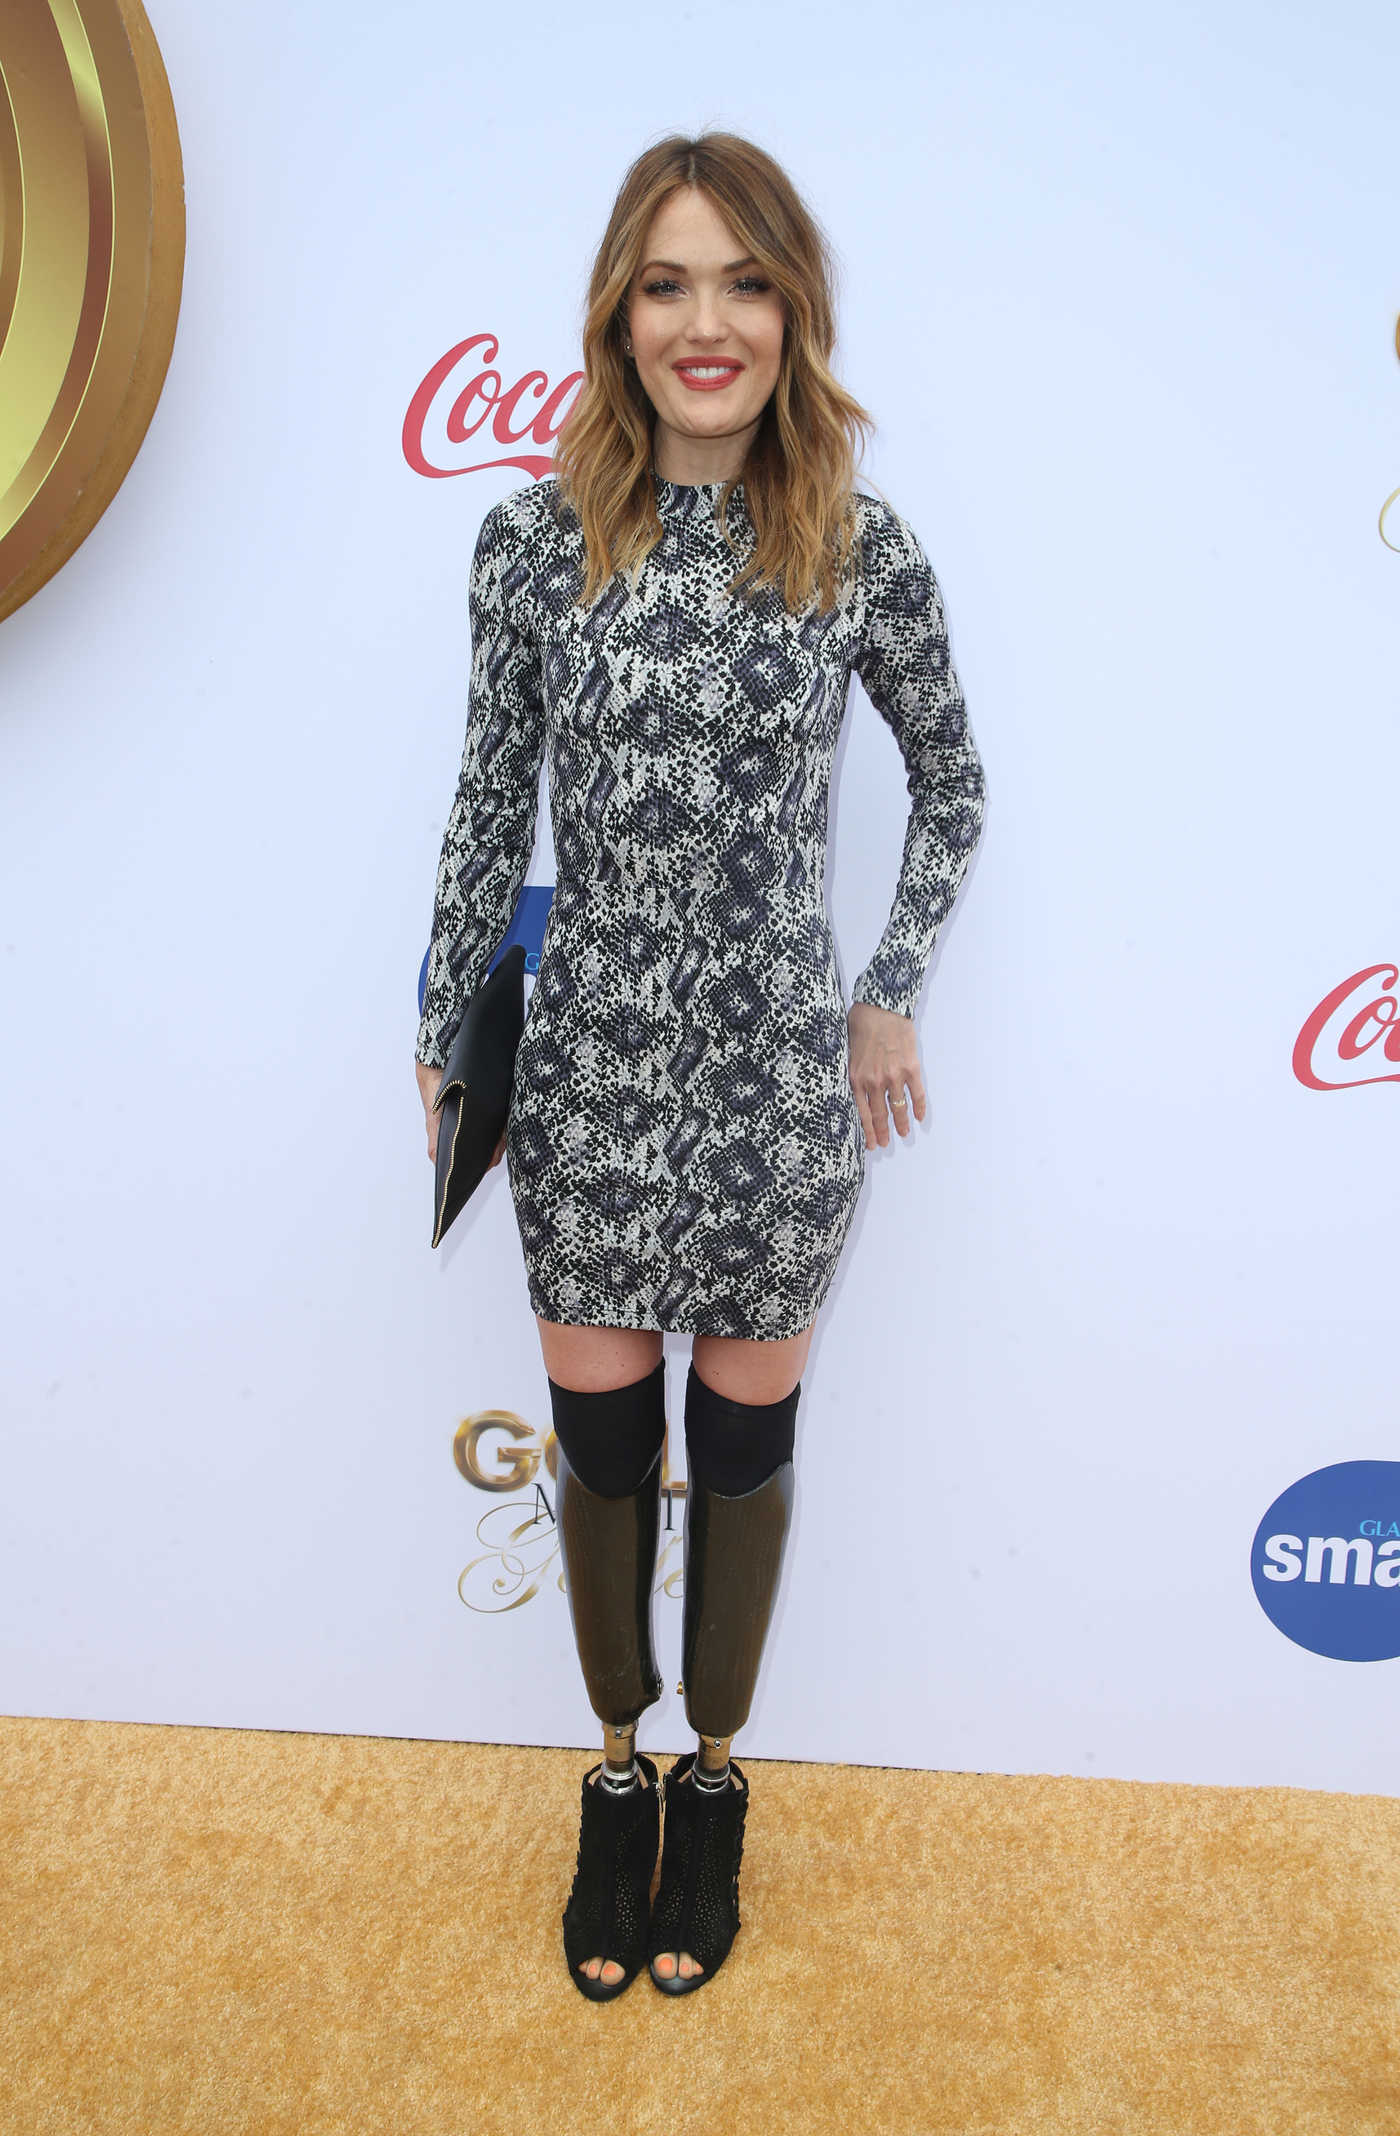 Amy Purdy Attends the 6th Annual Gold Meets Golden Brunch in LA 01/05/2019